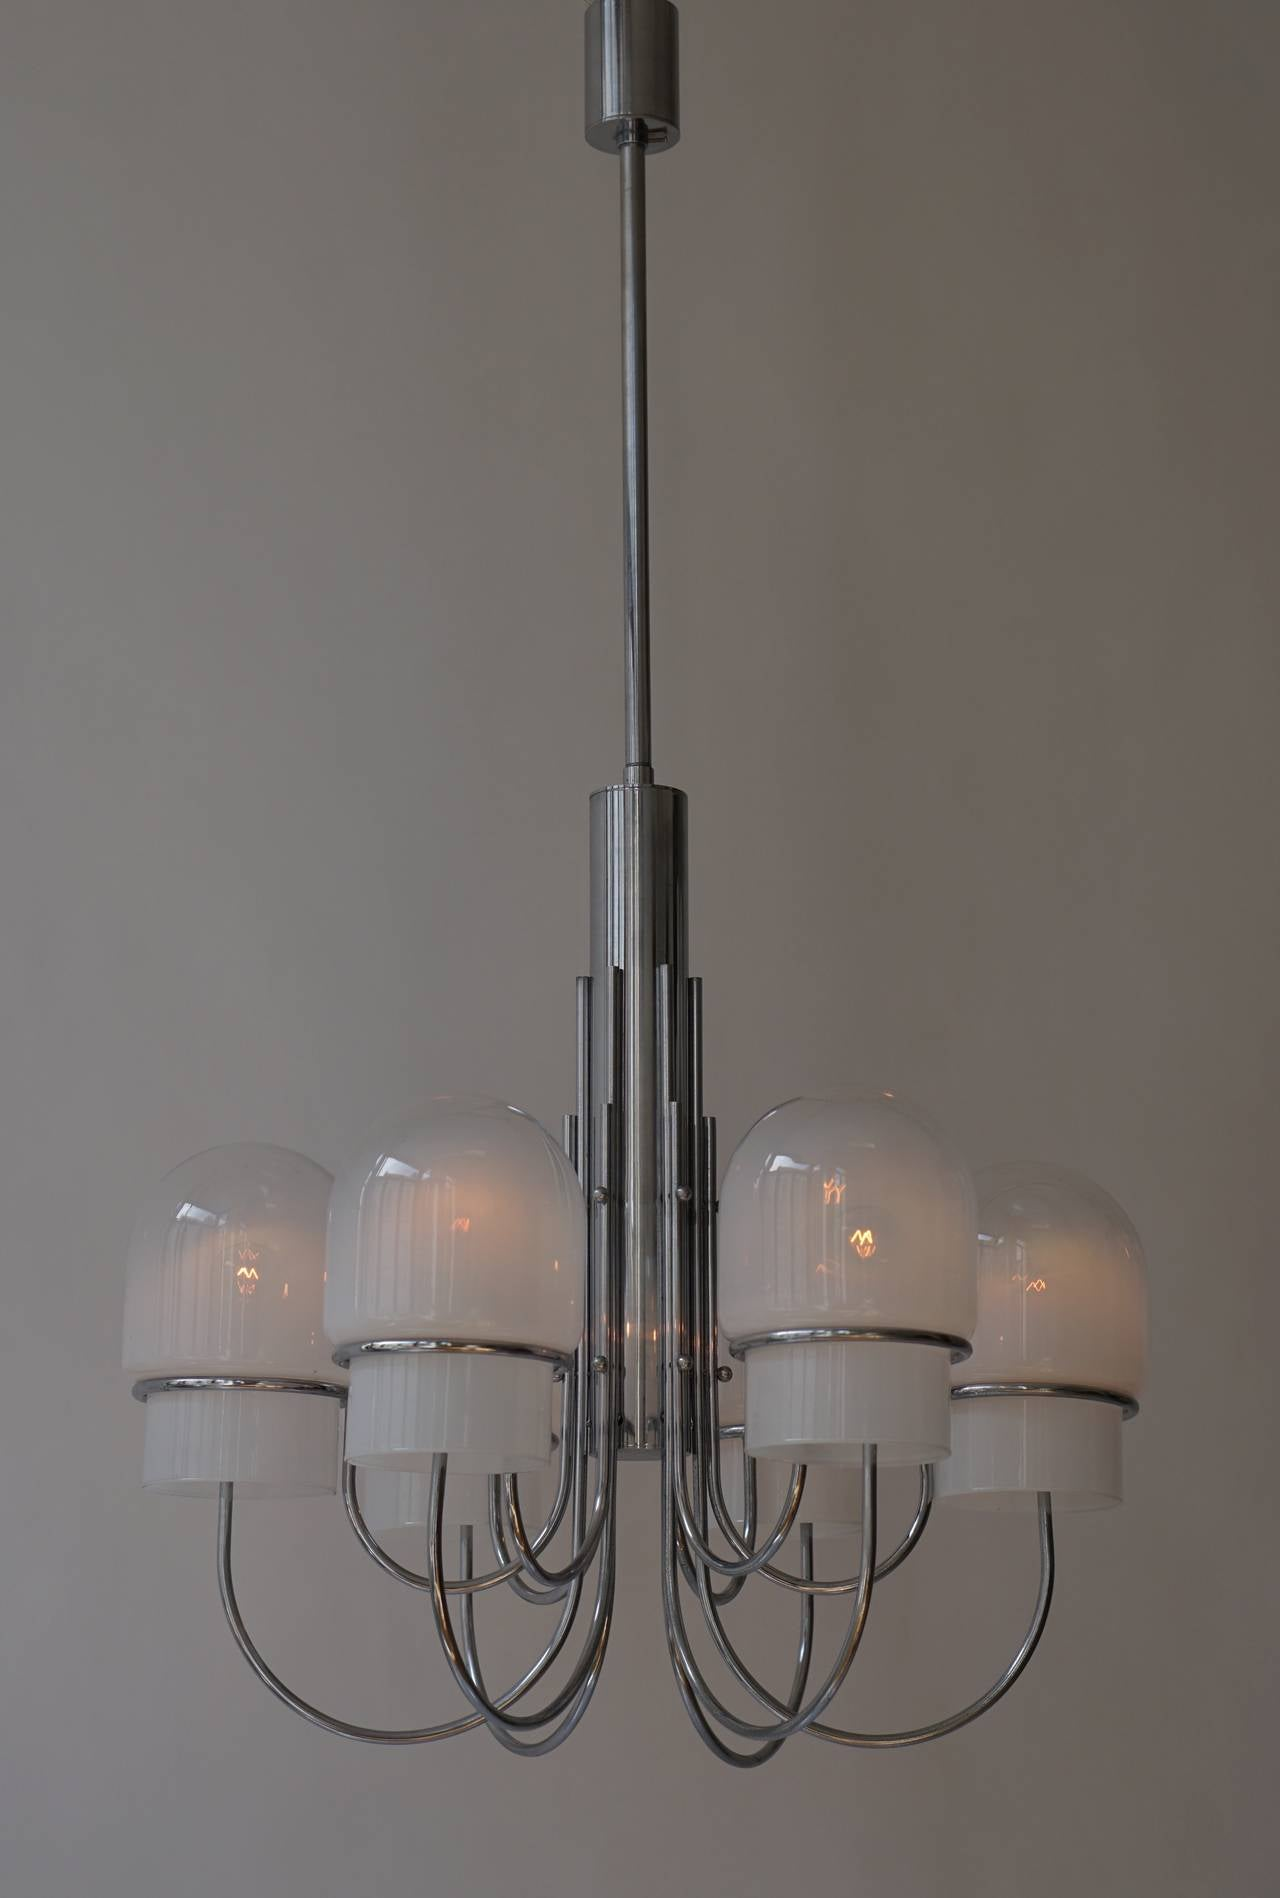 20th Century Italian Six Arched Arm Chrome and Milk Glass Chandelier, circa 1960s For Sale